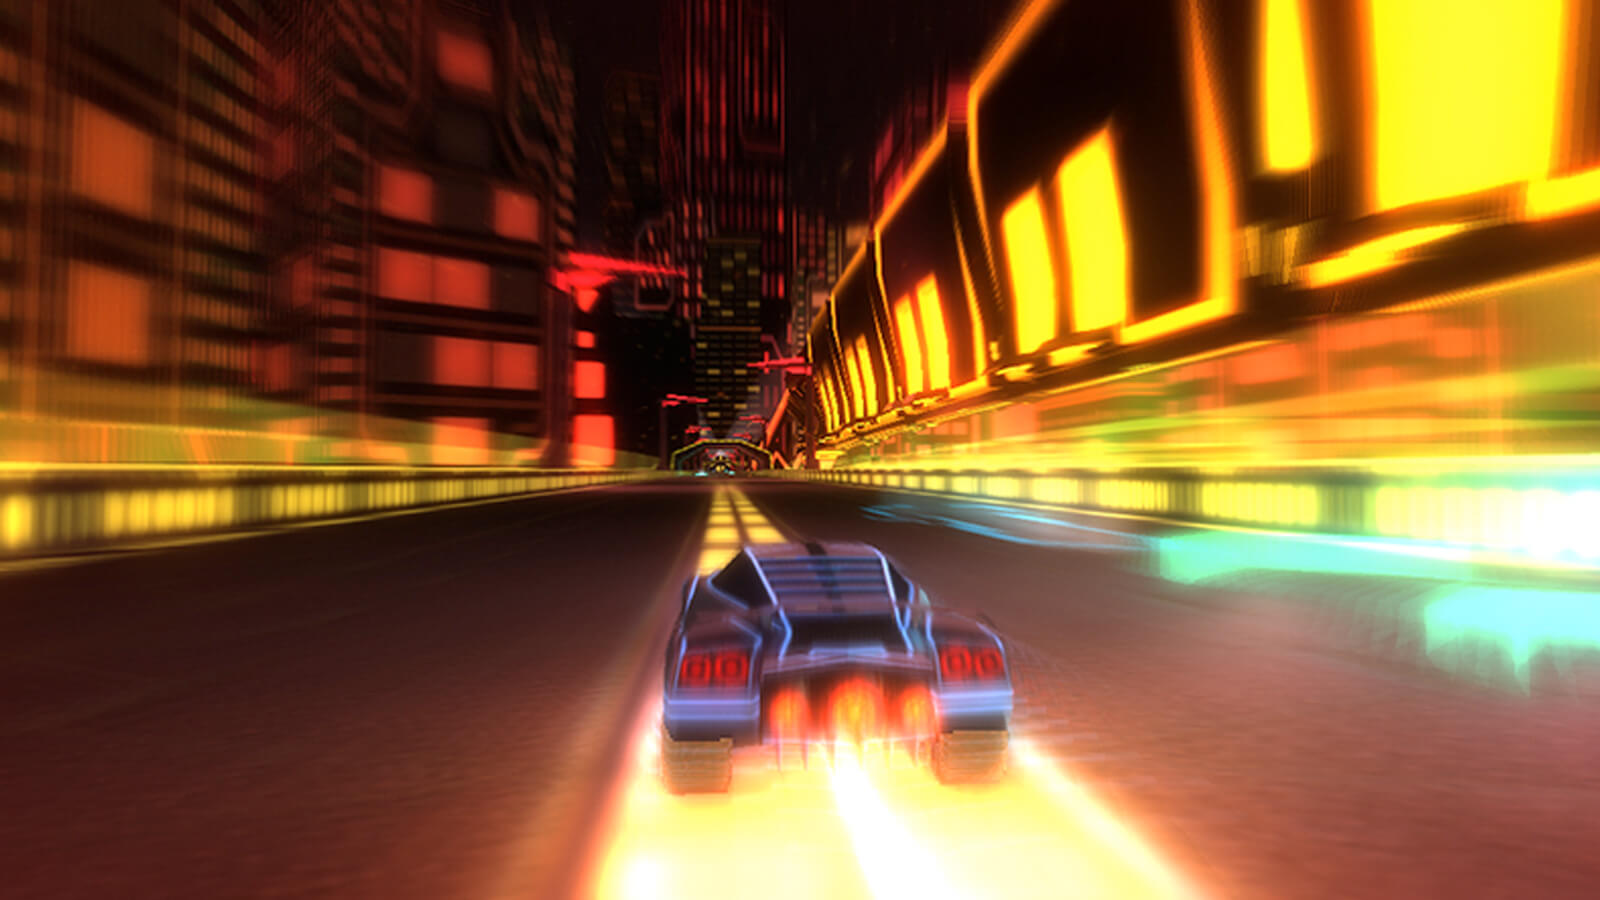 A car speeds through a glowing, futuristic cityscape.